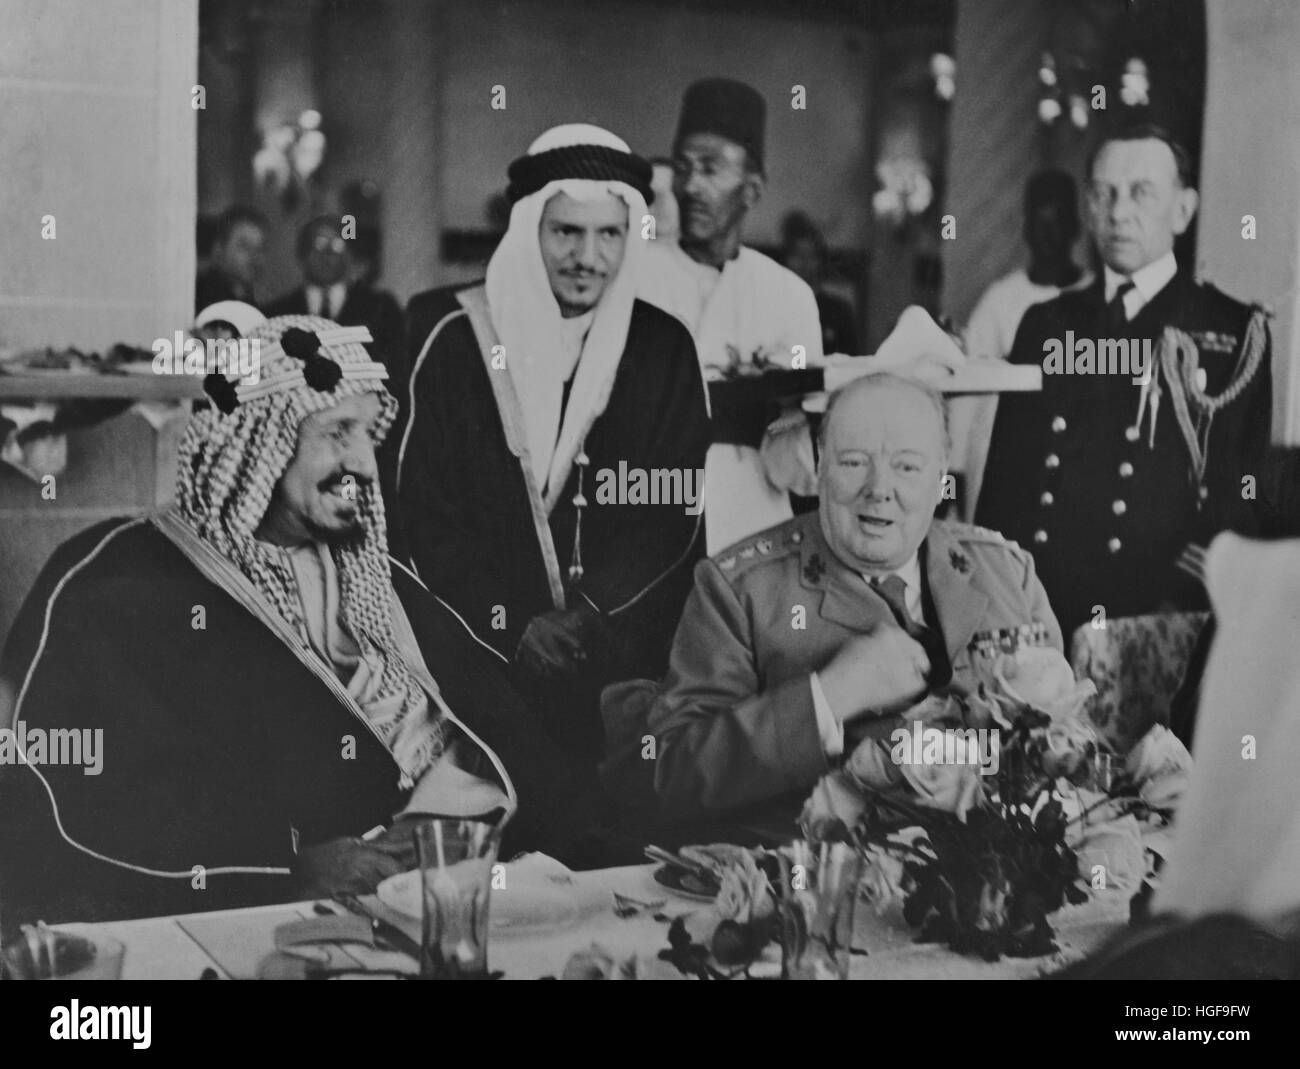 Image result for ibn saud family tree